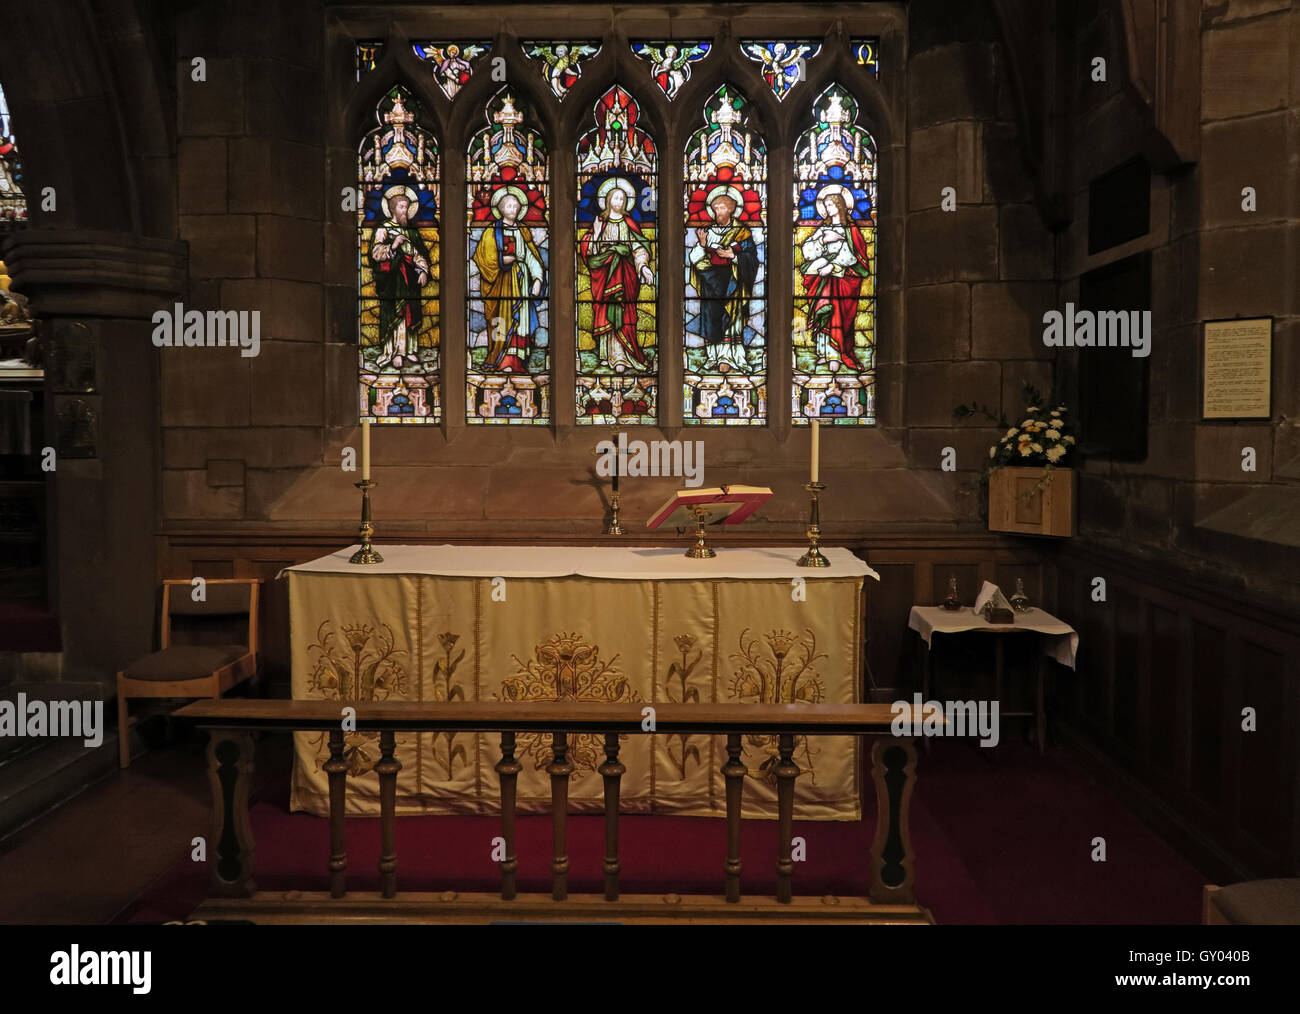 St Wilfrids Church Grappenhall- Lady Chapel Altar, Warrington,cheshire, UK - Stock Image